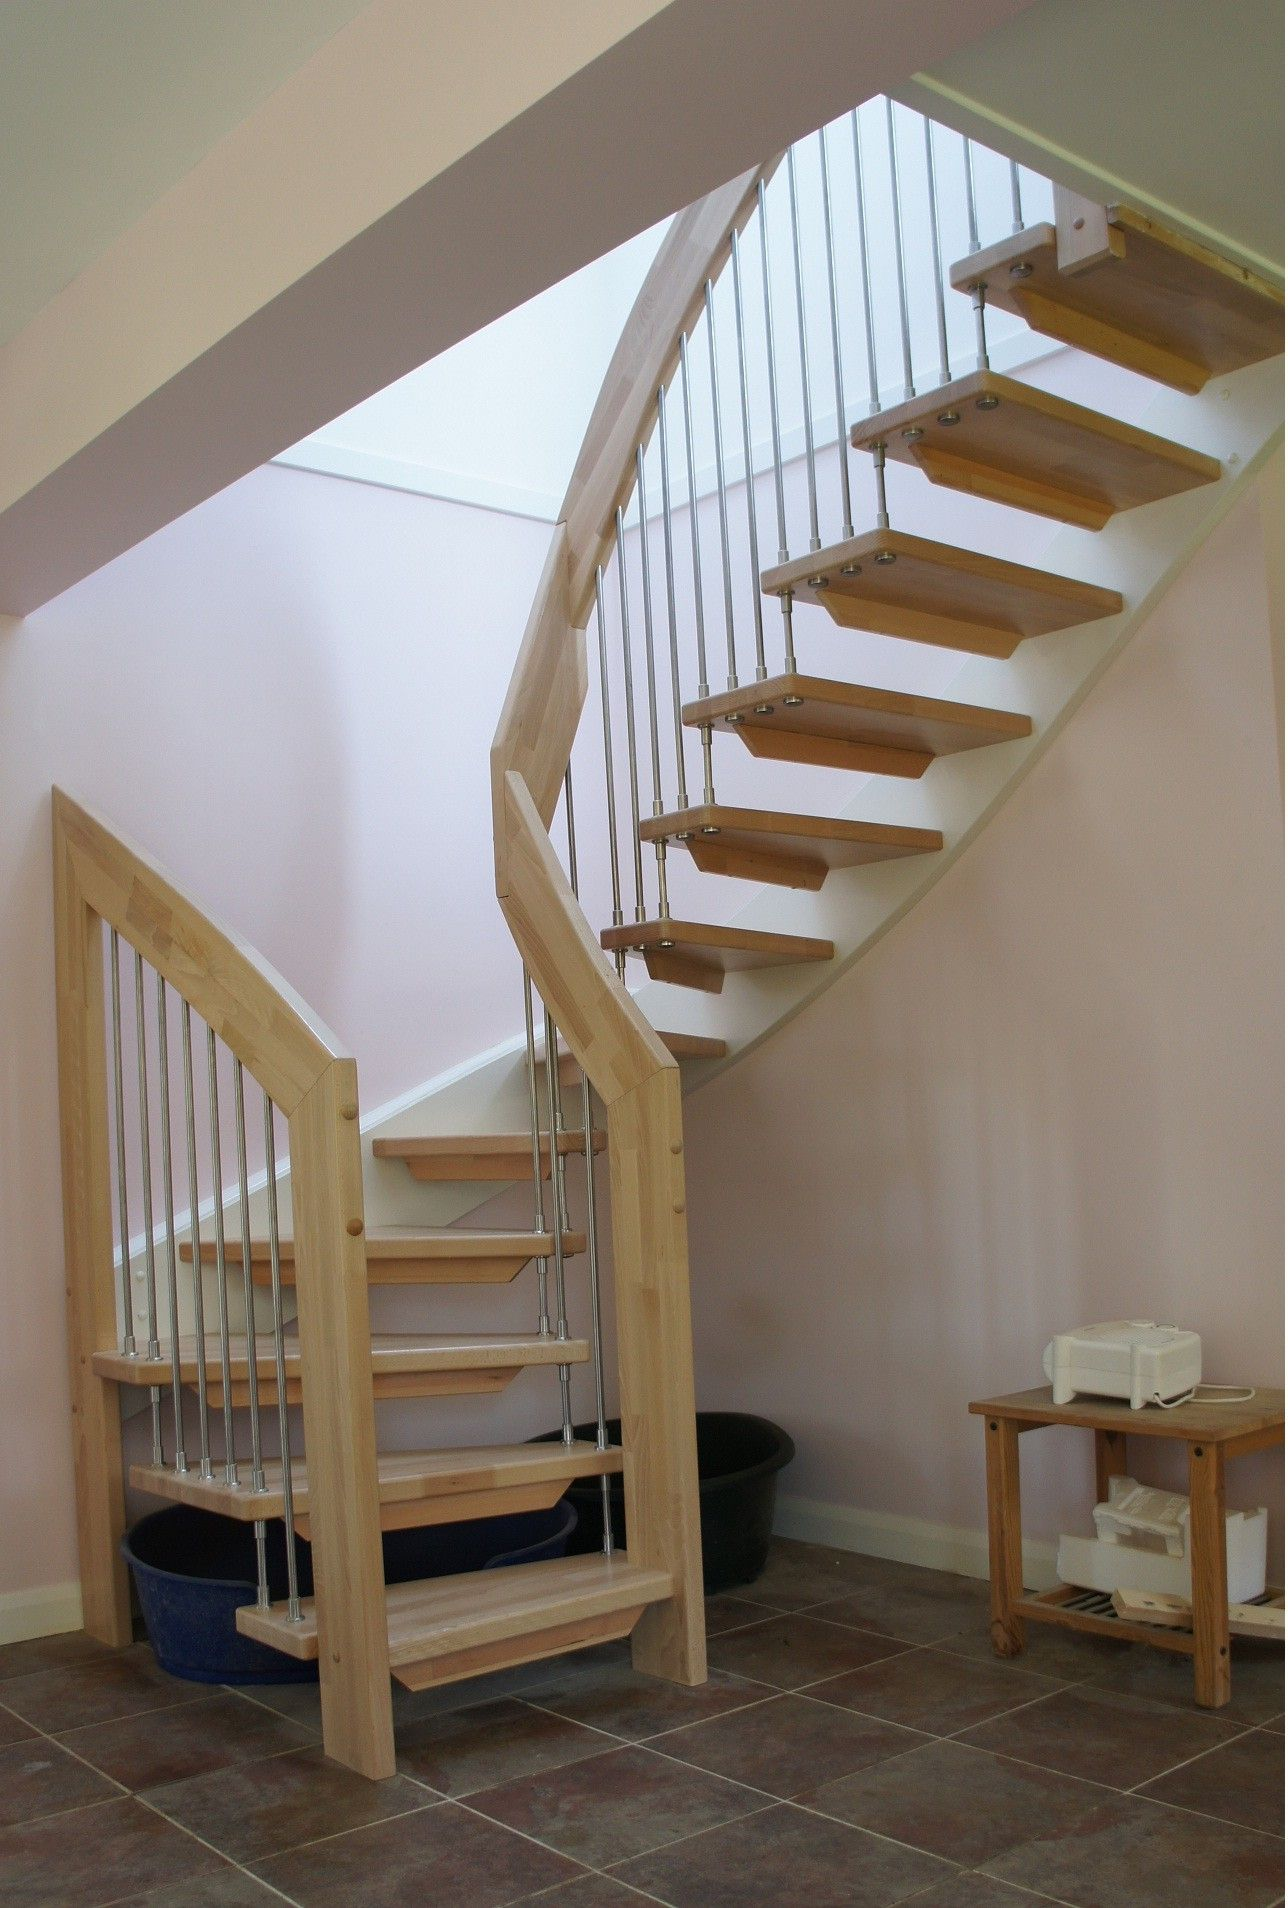 Simple Design Ideas Of Small Space Staircase With Brown Wooden Treads And Handrails Also Silver Color Small Space Staircase Circular Stairs Small Space Stairs